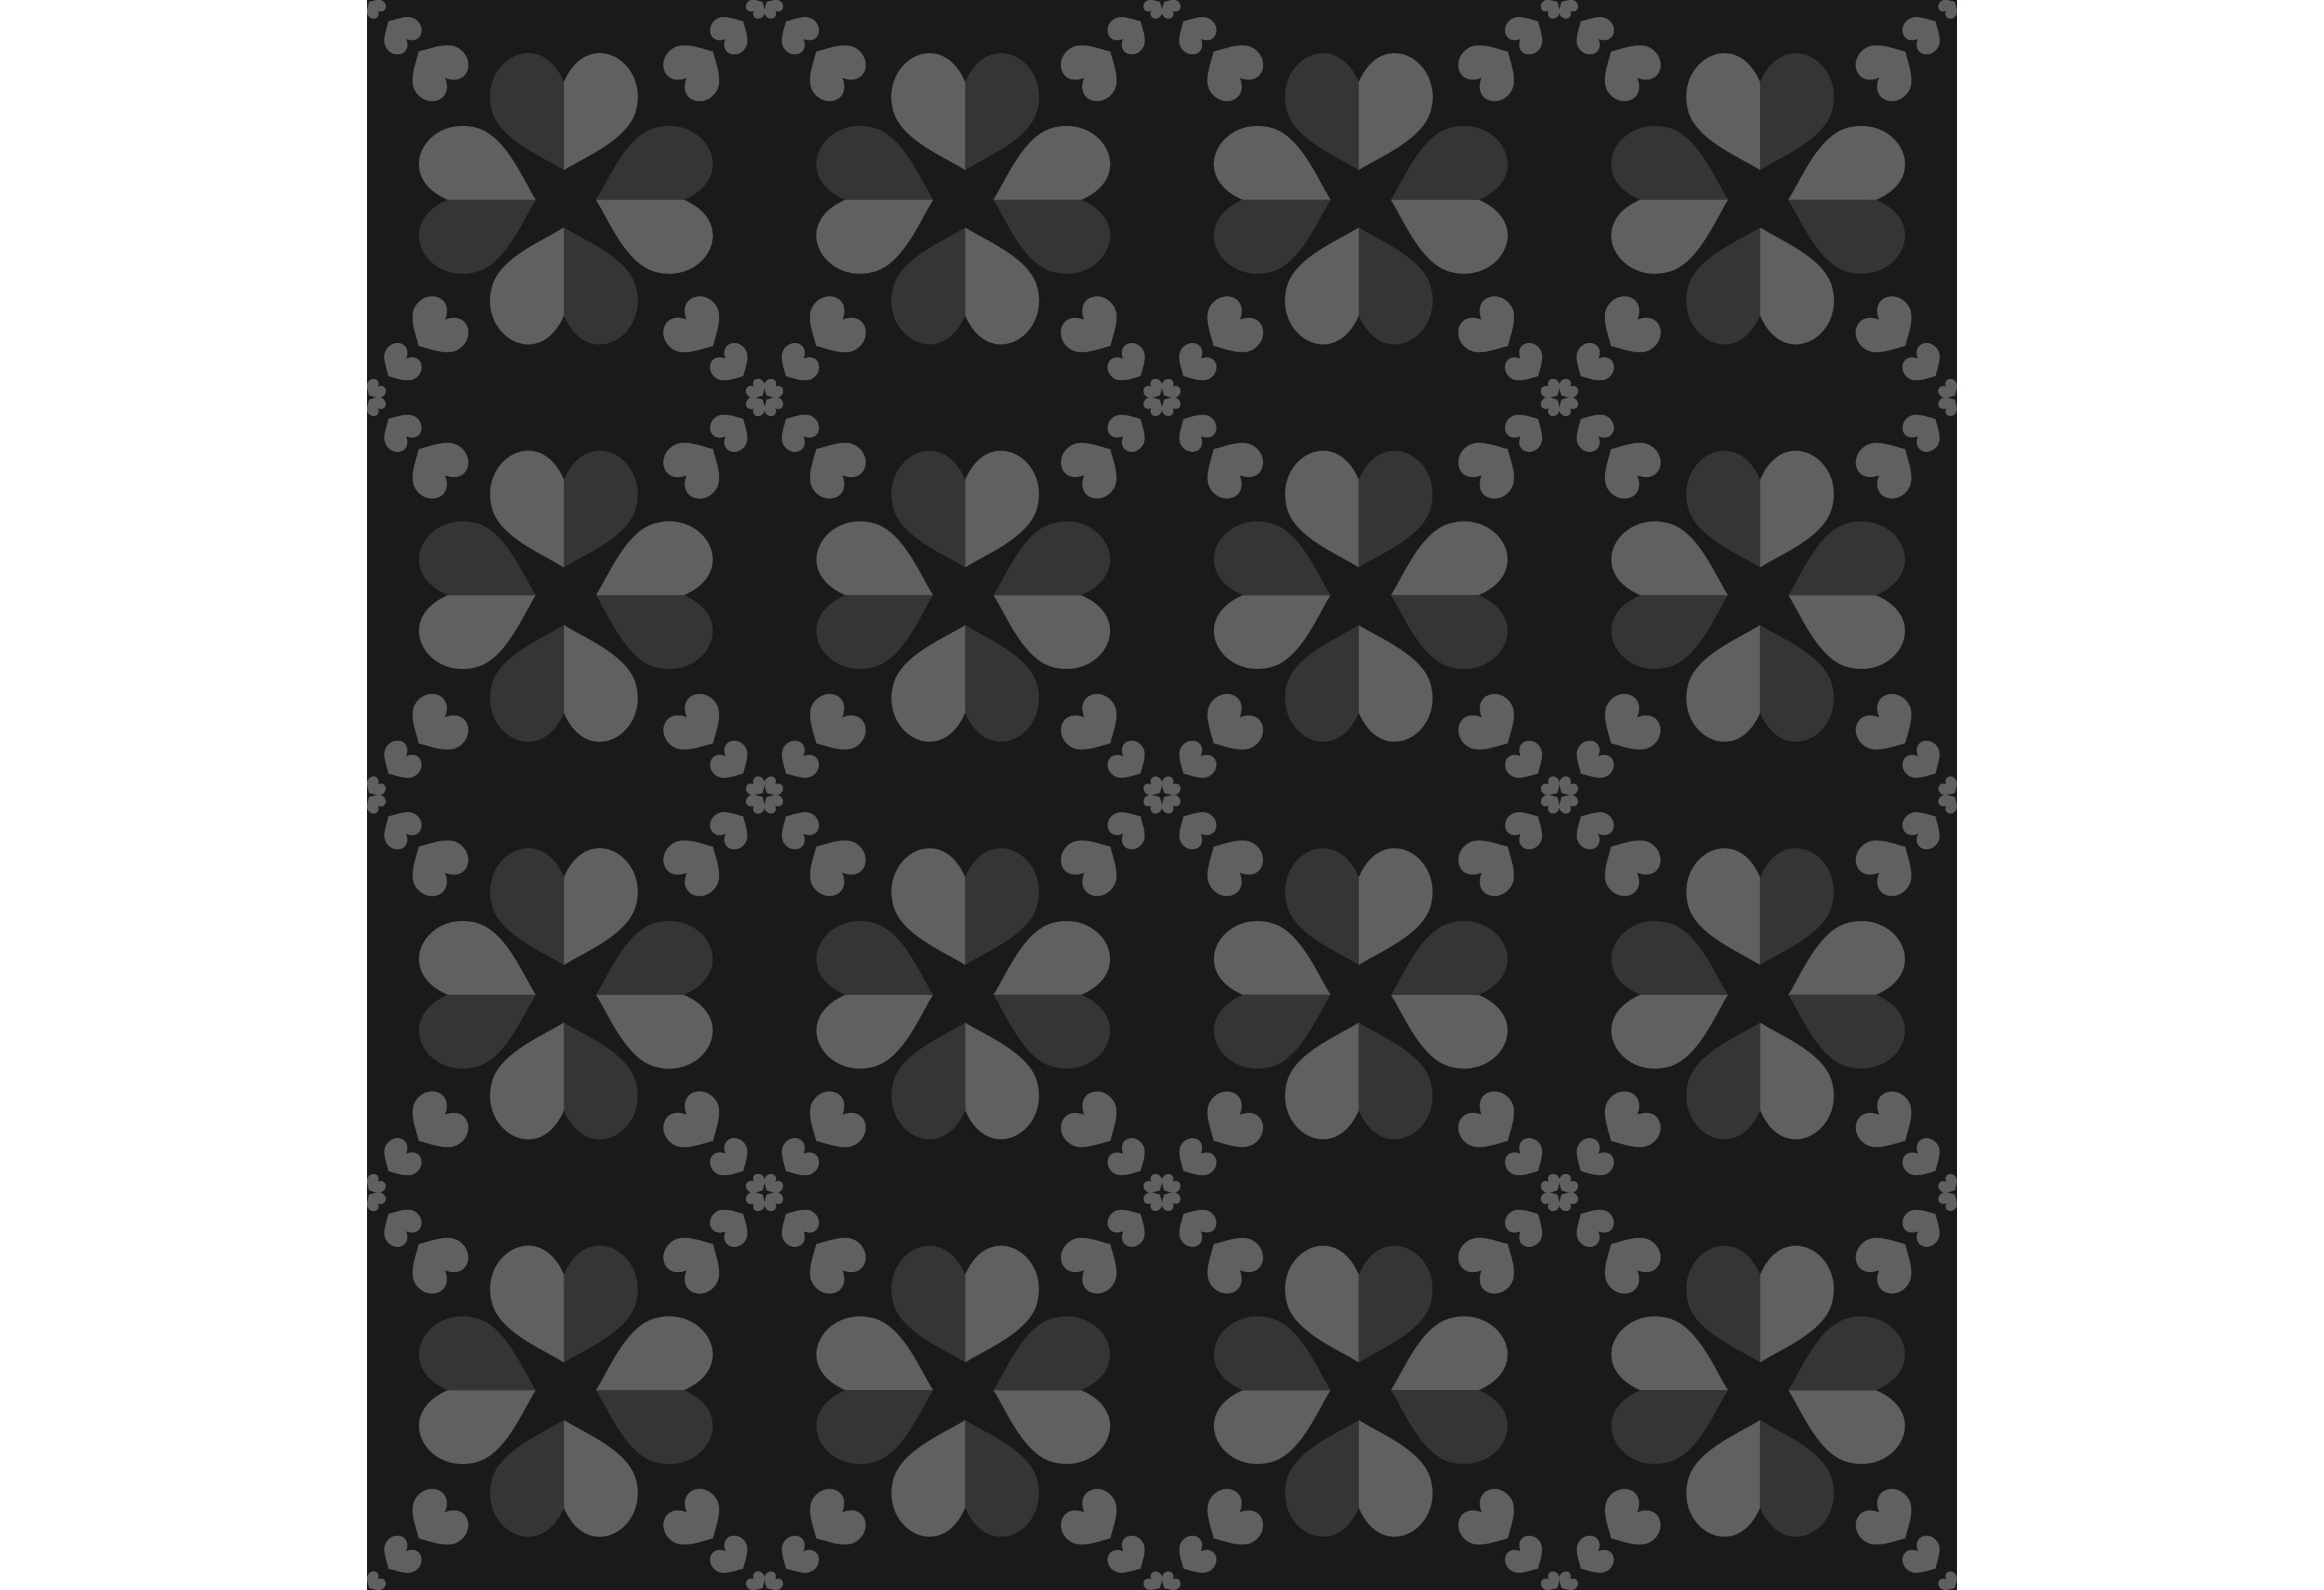 26 Patterns Black Flower Pattern Graphic By Designclusters Creative Fabrica